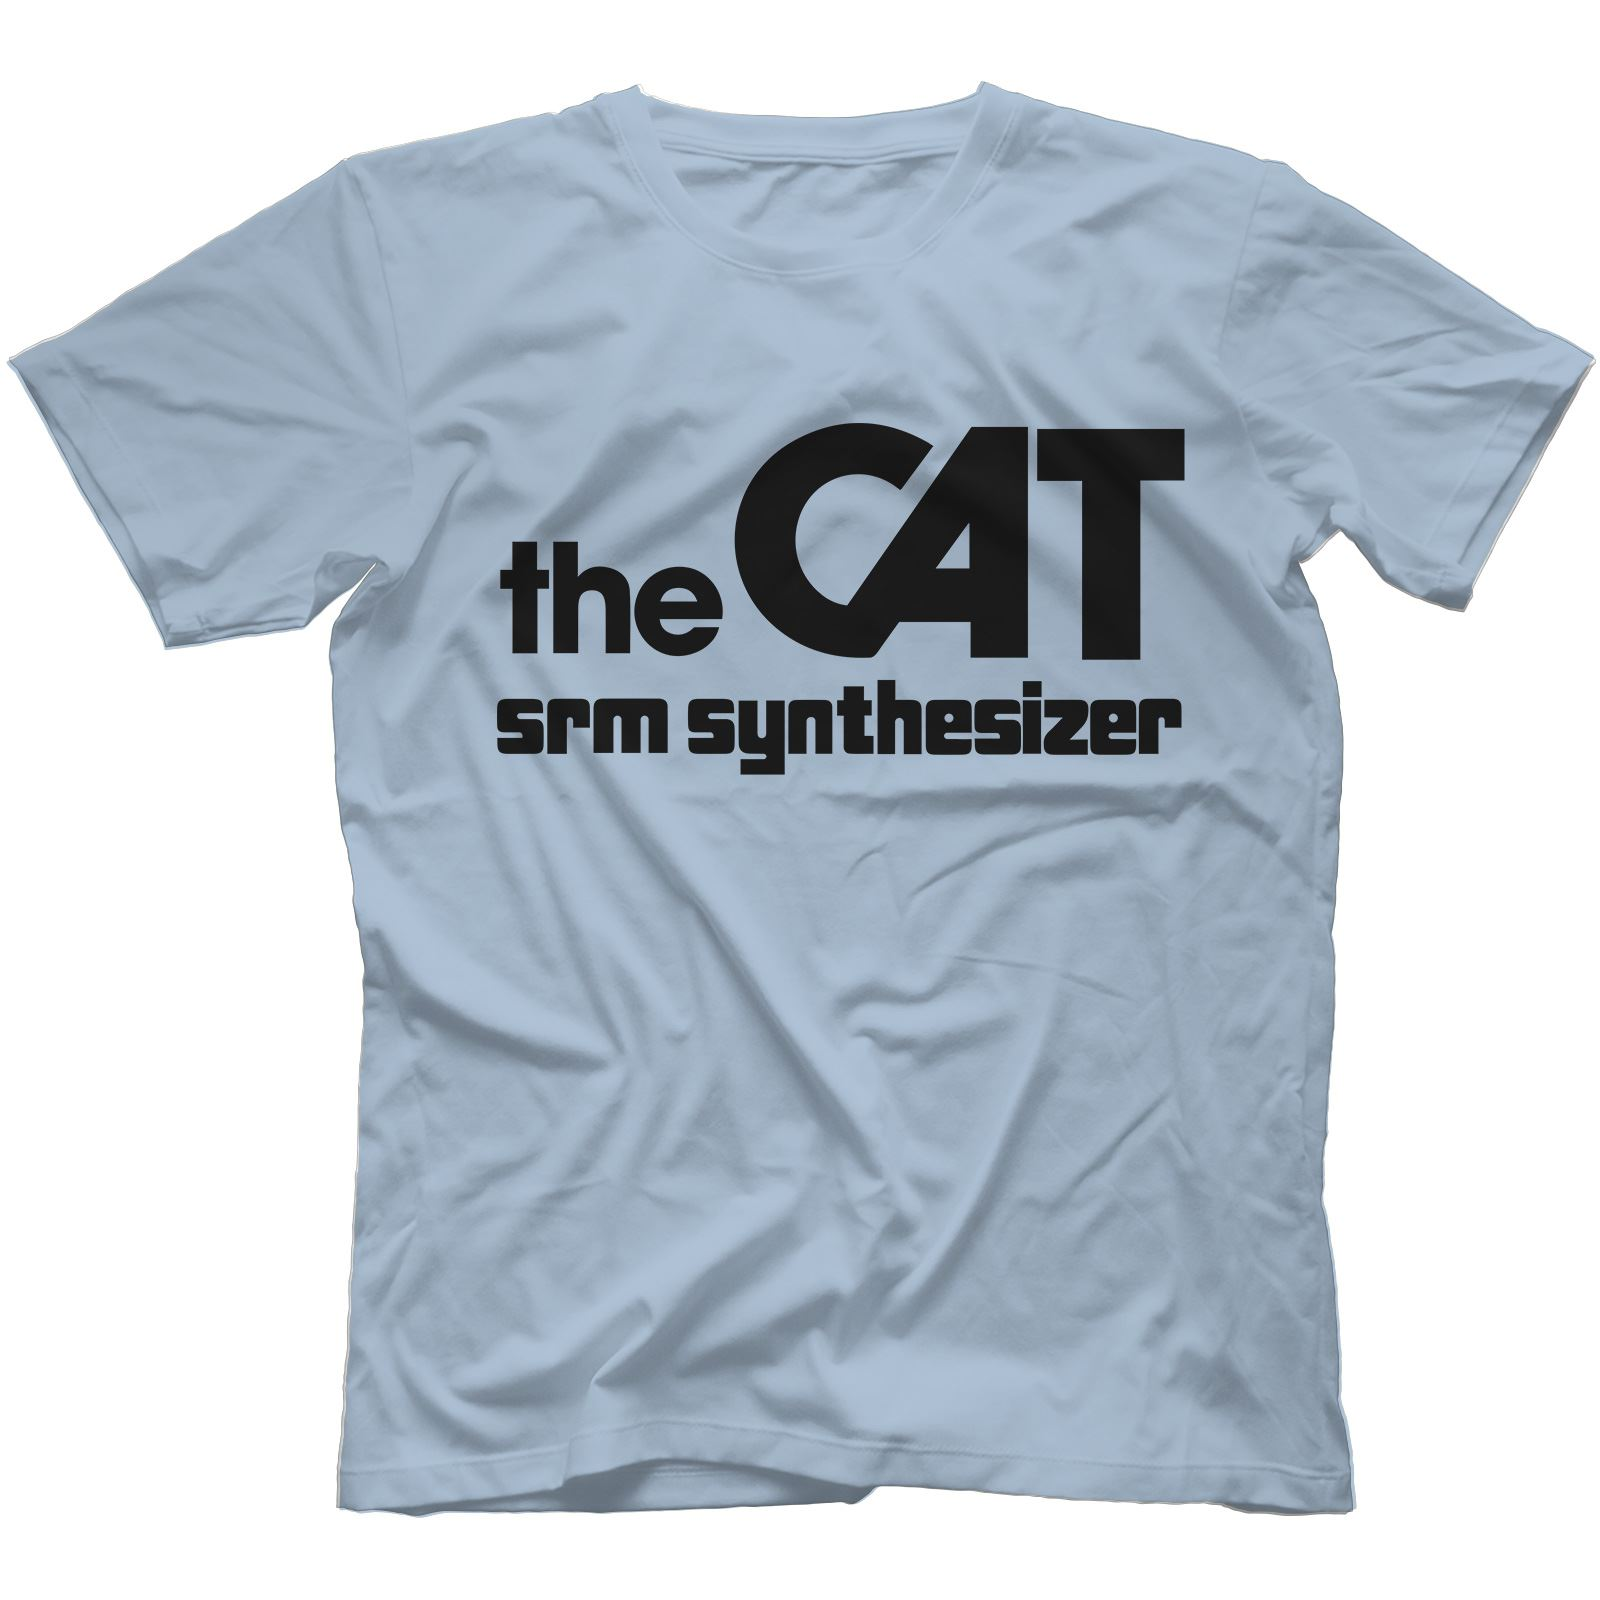 The-Cat-SRM-Synthesiser-T-Shirt-100-Cotton-Retro-Analog-Arp-Odyssey Indexbild 33